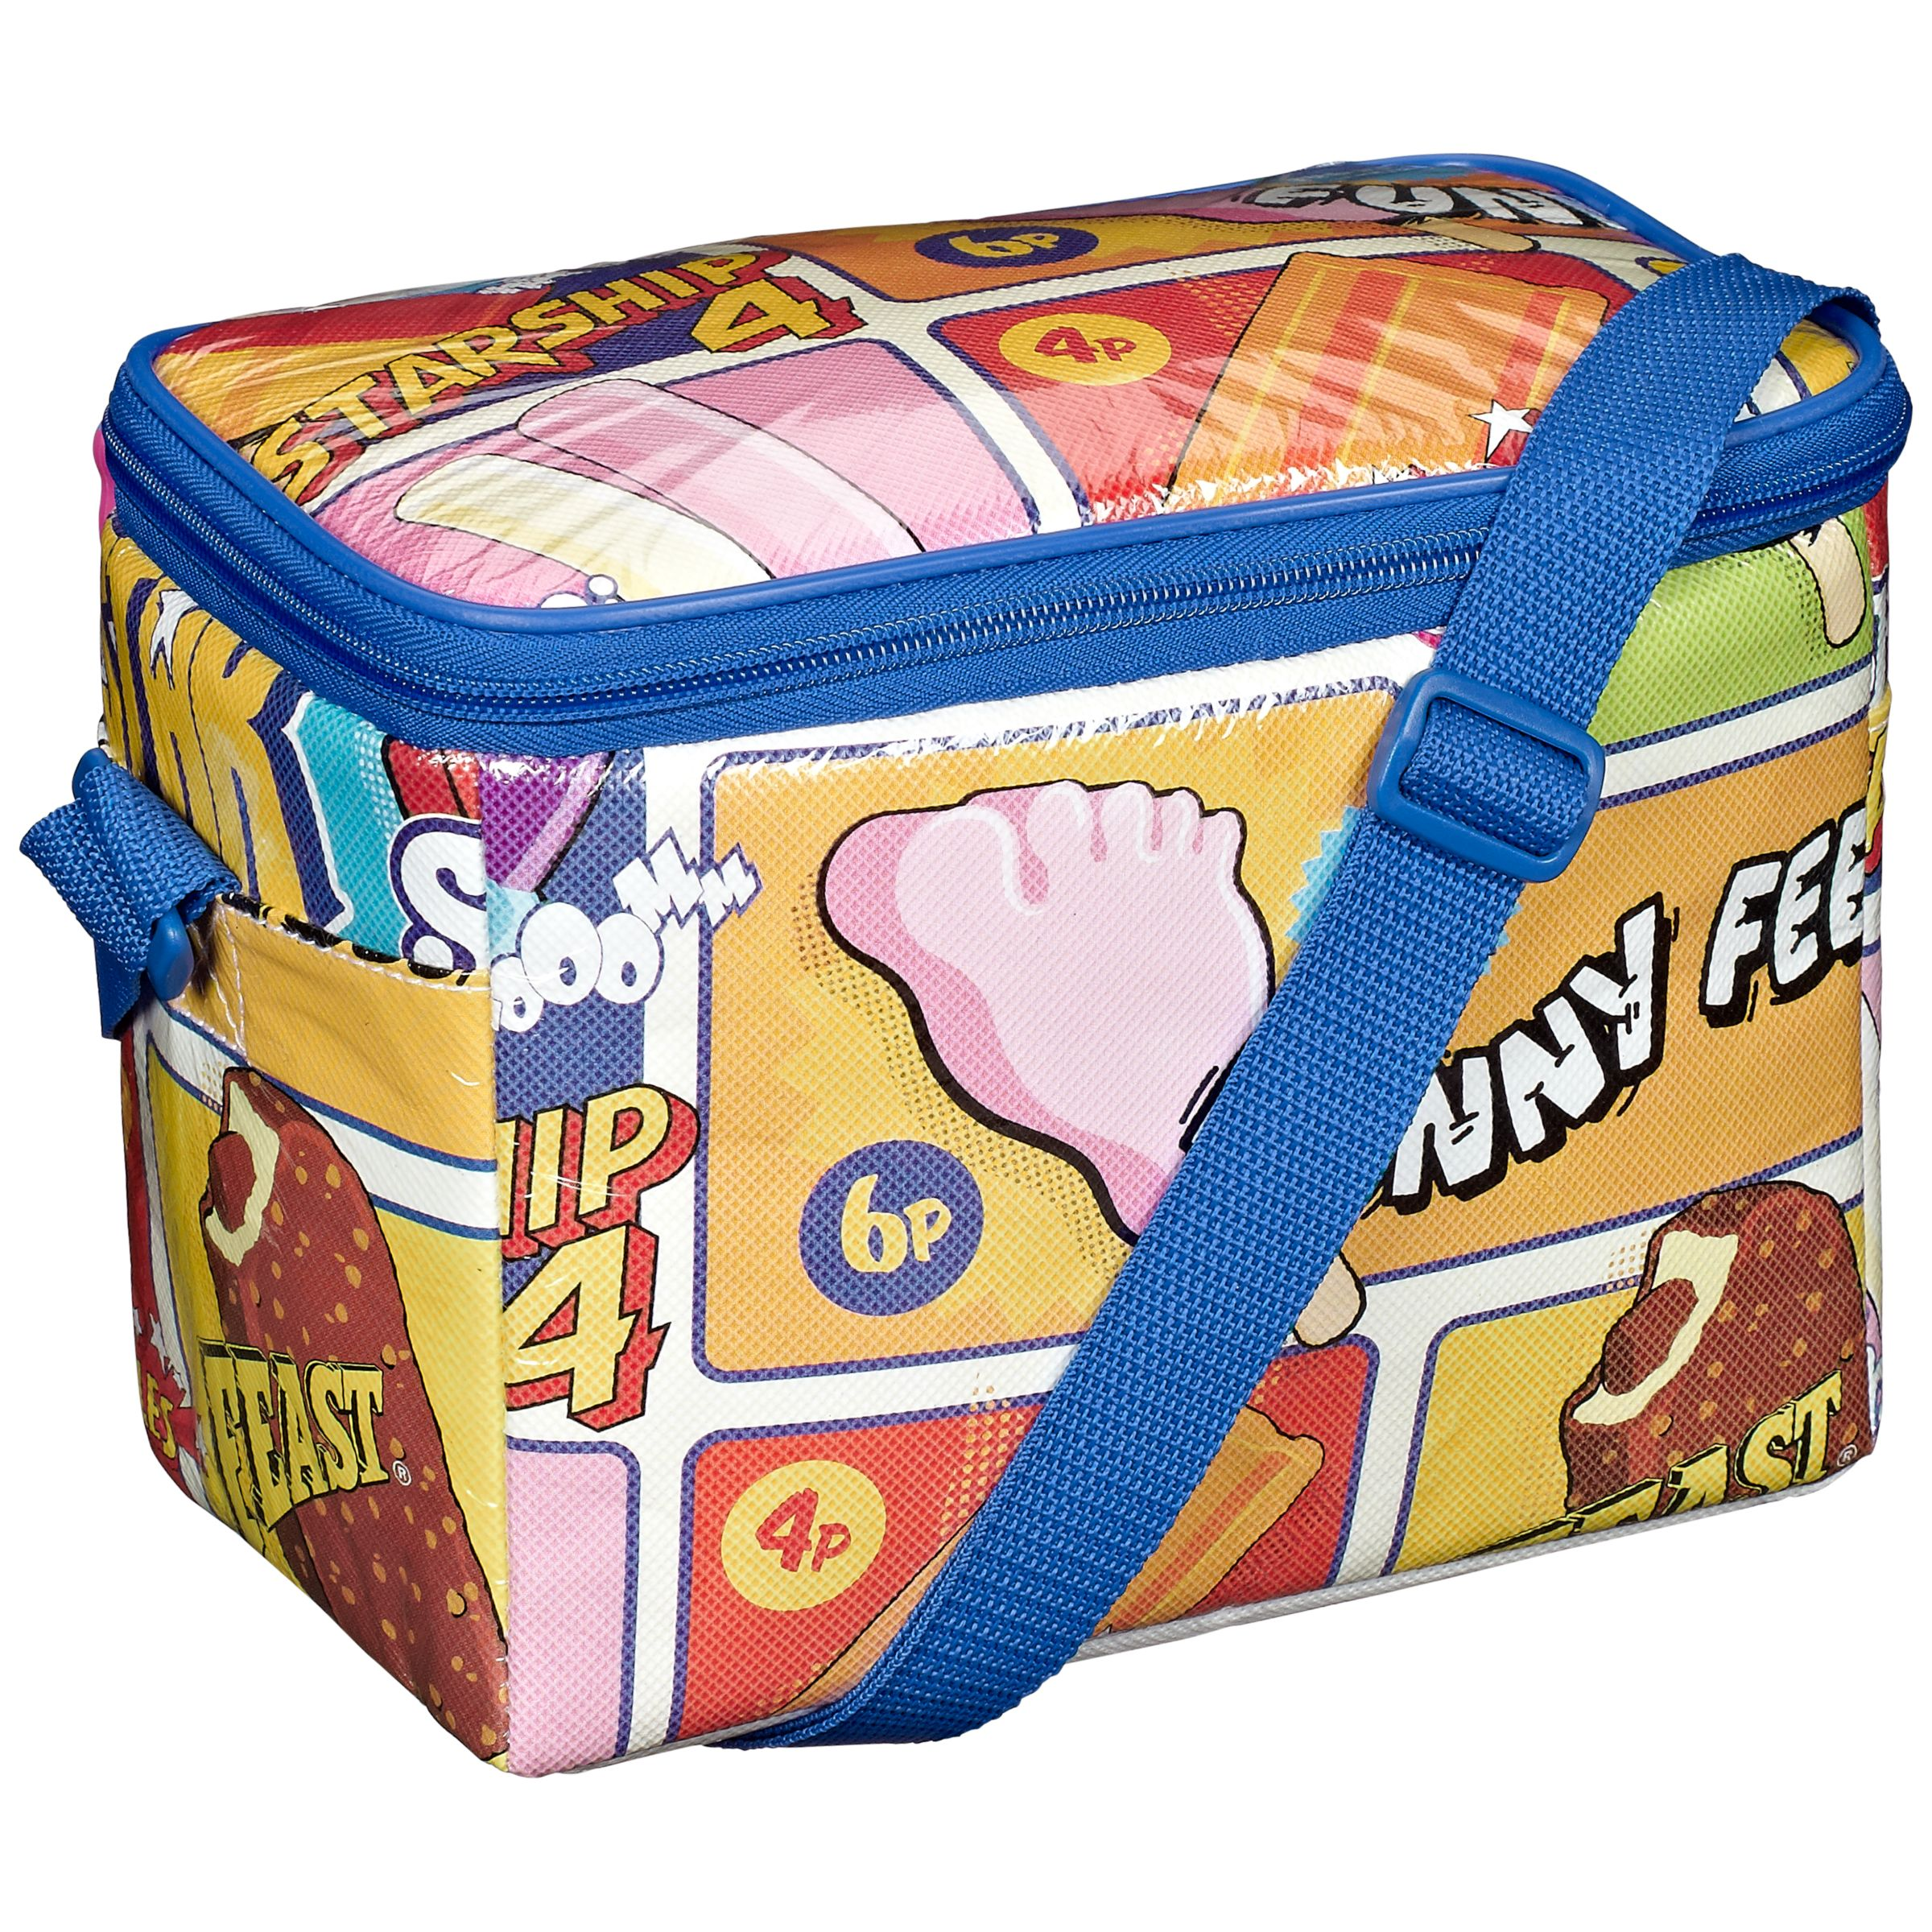 Wall's Personal Coolbag